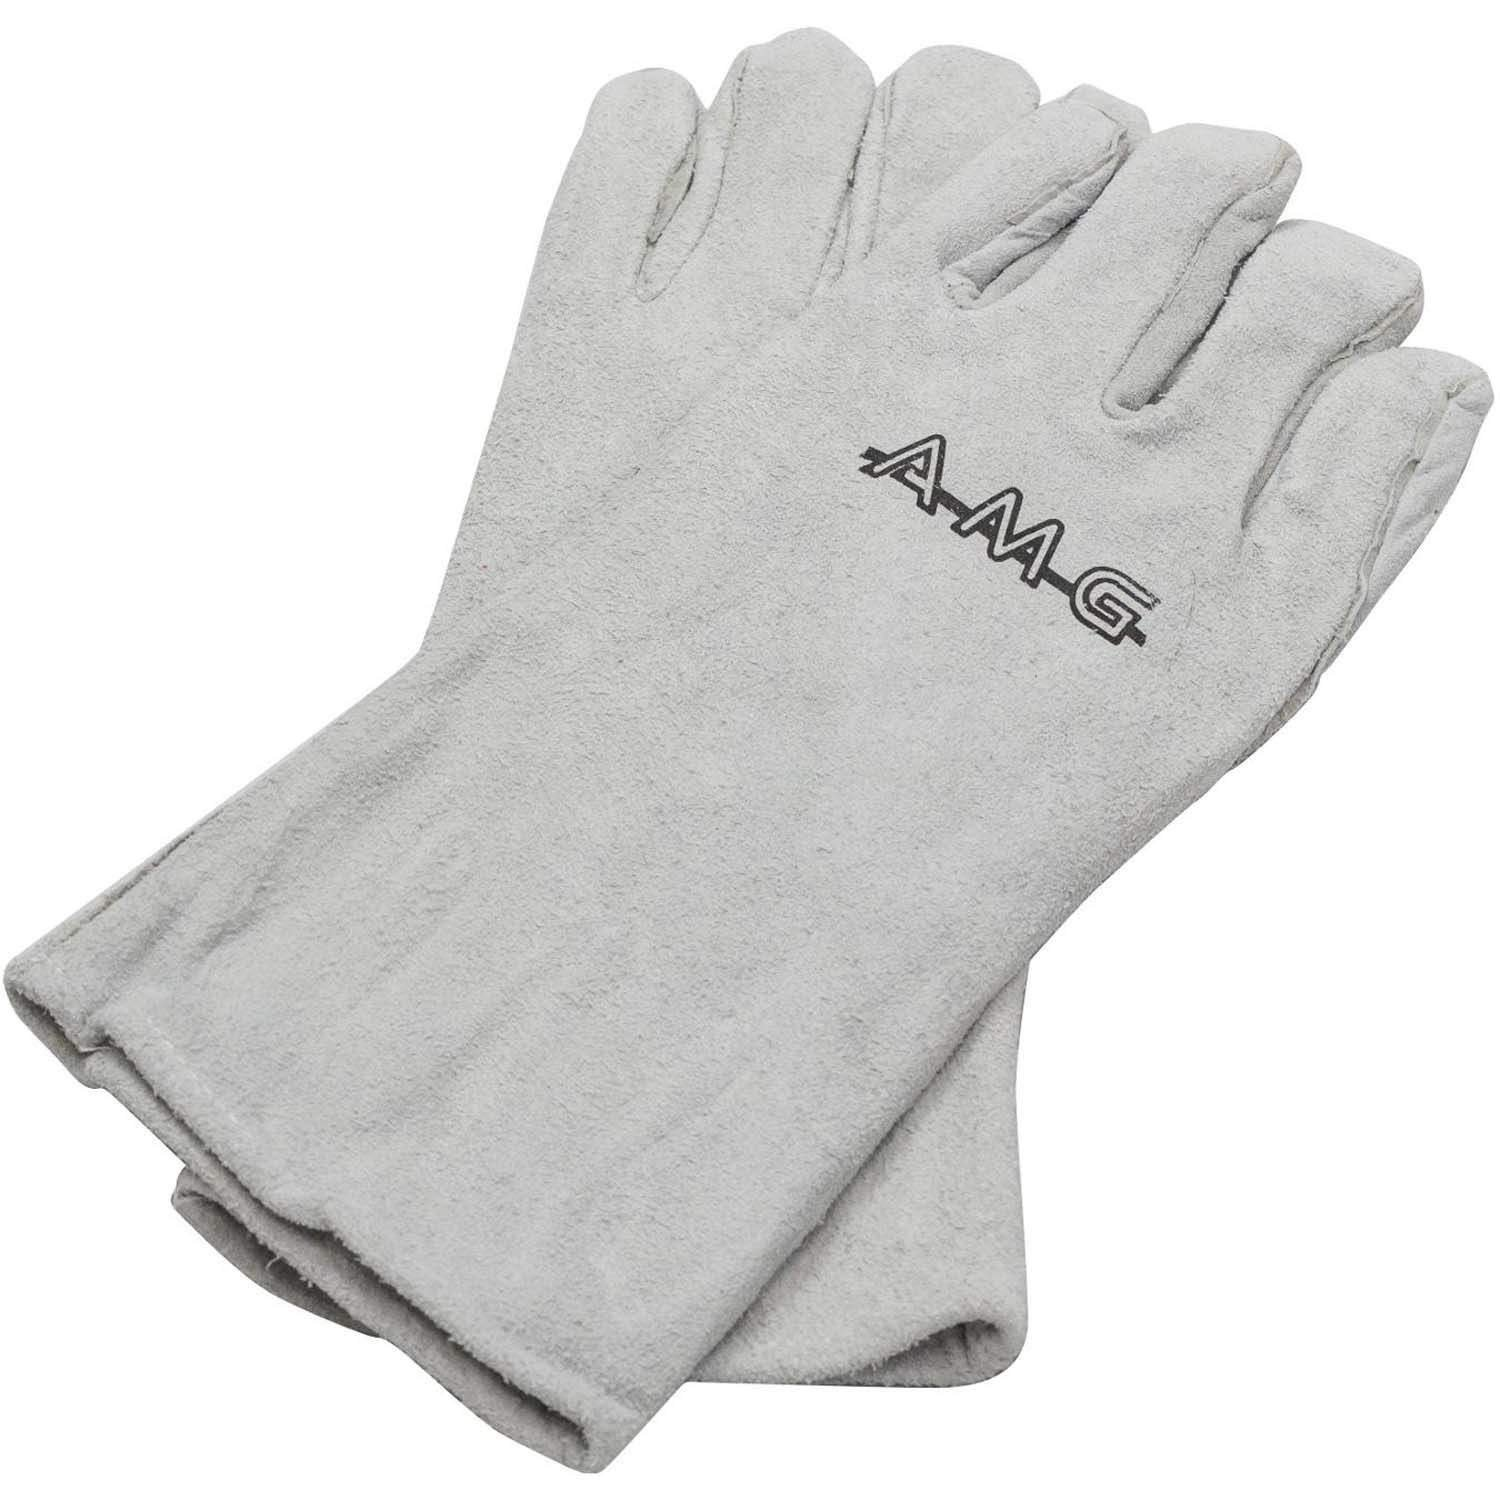 American Muscle Grill Leather BBQ Gloves - AMG-Gloves